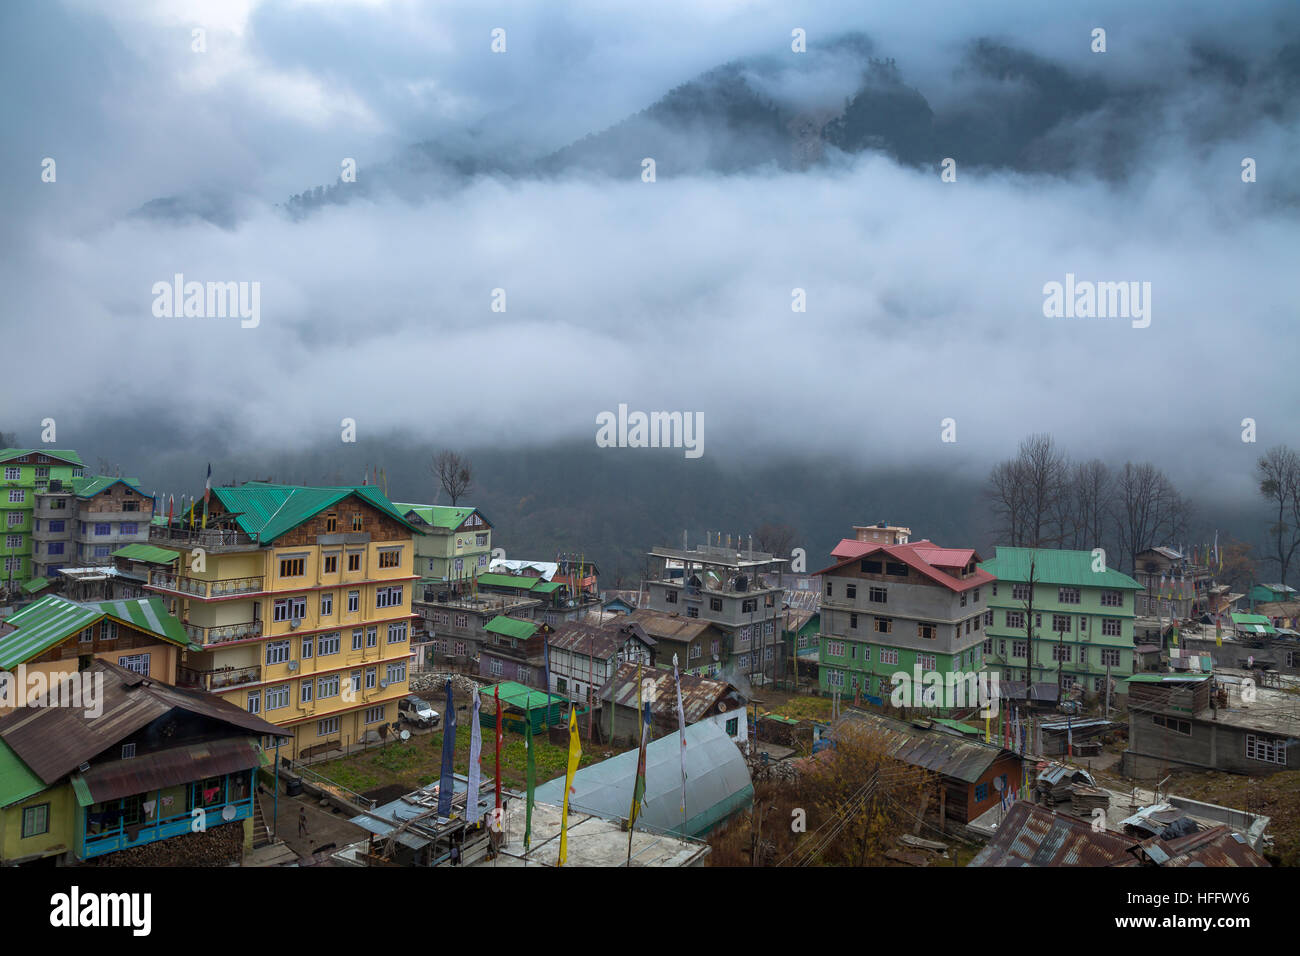 Himalayan mountain village town of Lachen, Sikkim on a foggy winter morning. - Stock Image